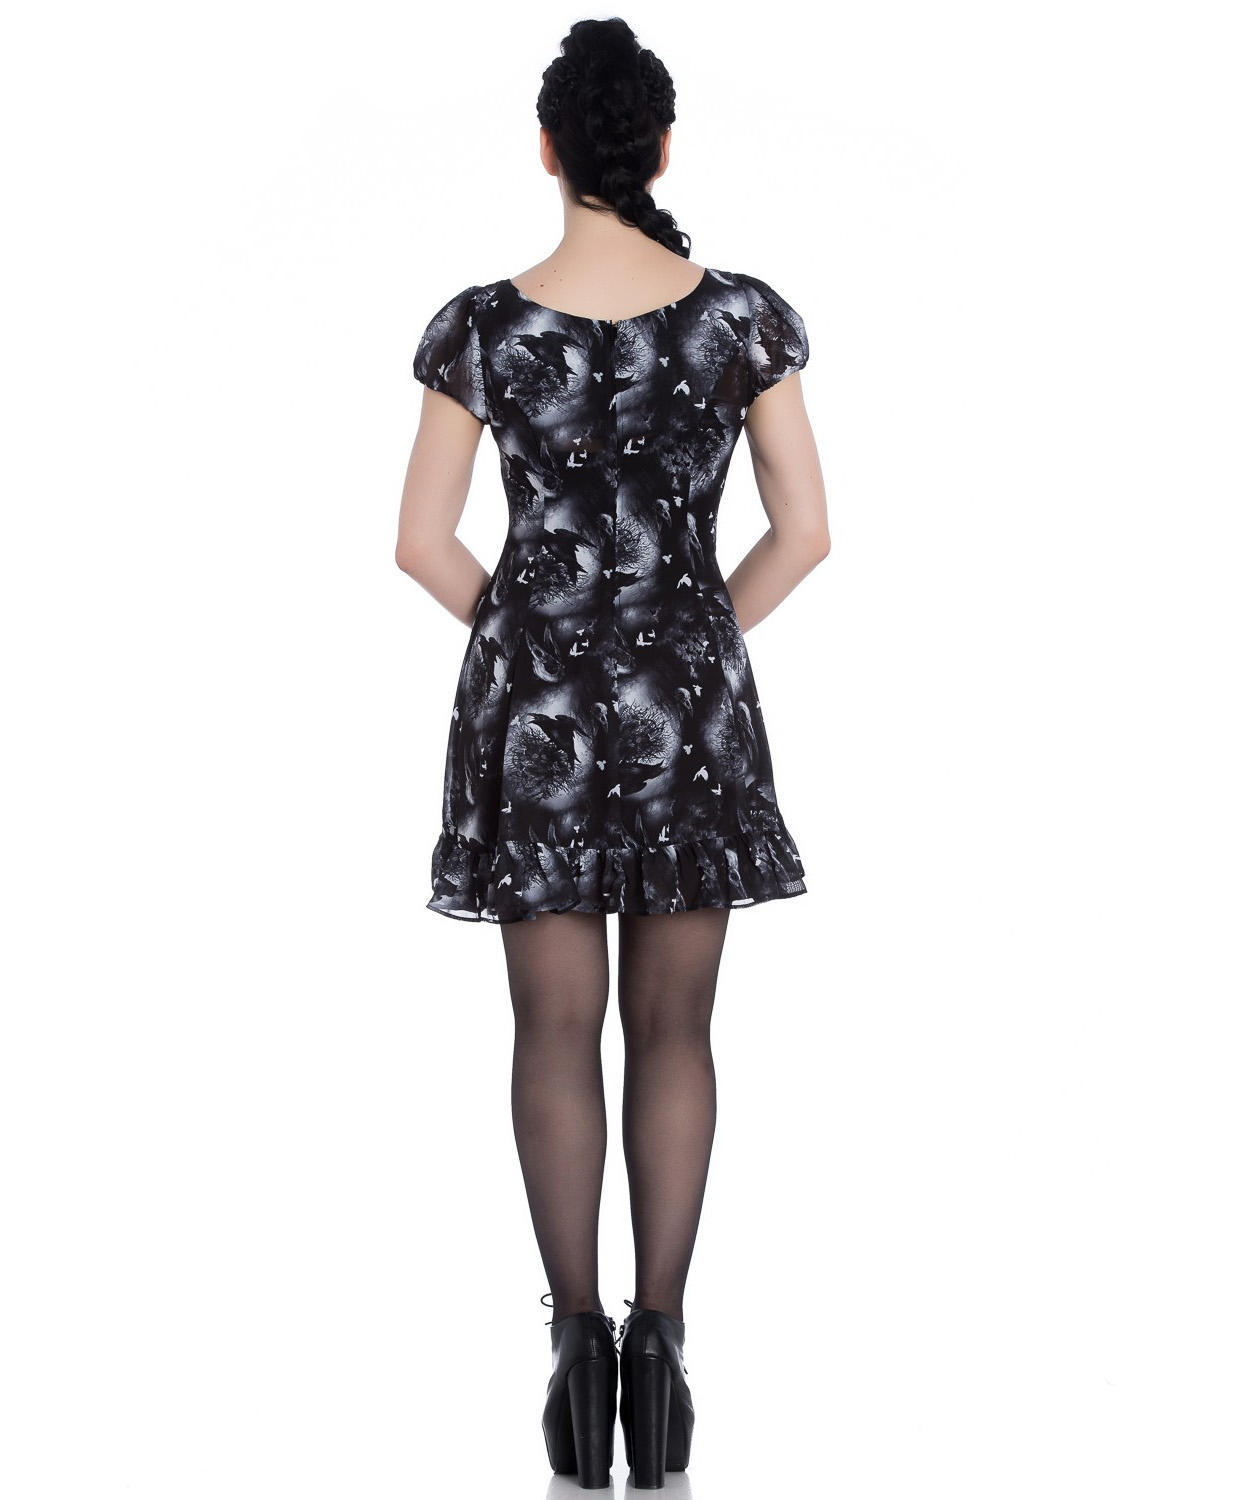 Hell-Bunny-Alchemy-Gothic-Black-Skater-Mini-Dress-ASH-Crows-Skulls-All-Sizes thumbnail 13